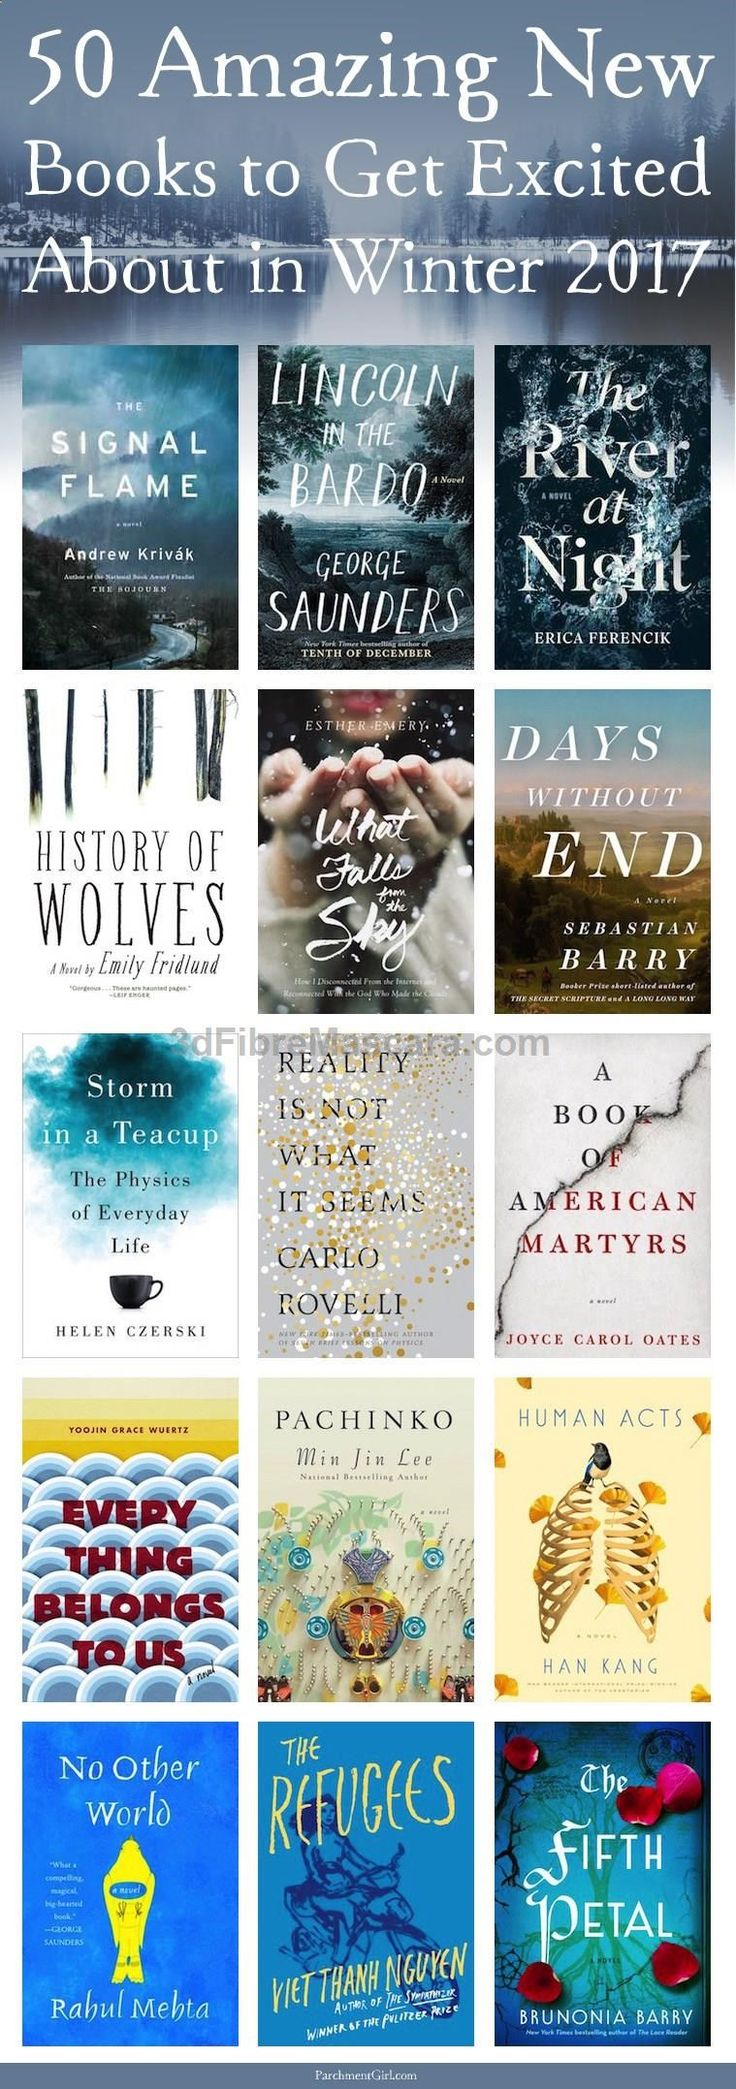 WINTER IS COMING... And so are these 50 amazing new books! Trust me, you wont have any trouble finding something to read this winter. #movie #movies #newreleases #cinema #media #films #filmreviews #moviereviews #television #boxsets #dvds #tv #tvshows #tvseries #newseasons #season1 #season2 #season3 #season4 #season5